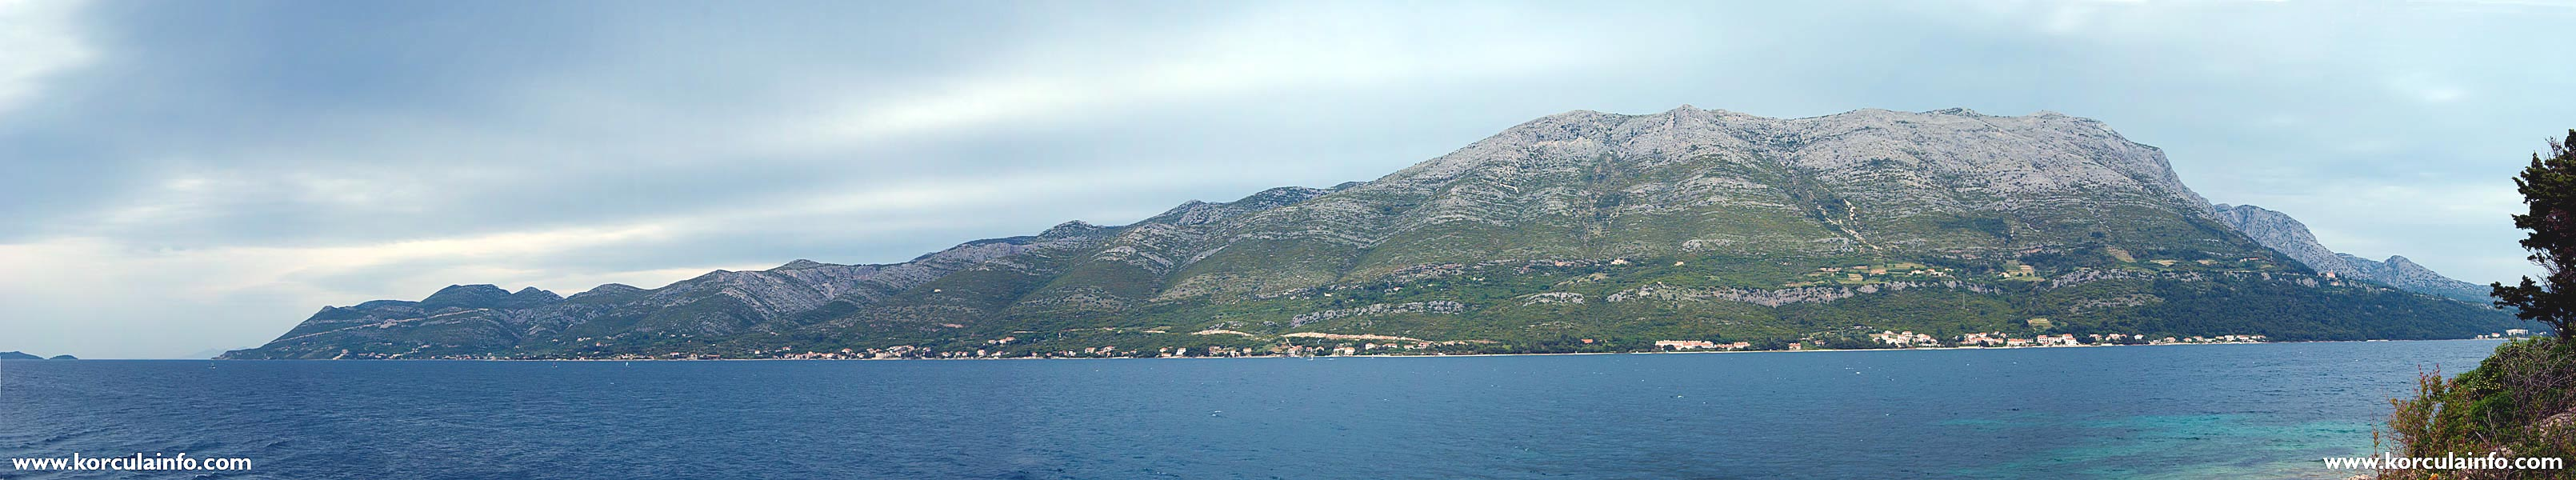 peljesac-from-korcula2